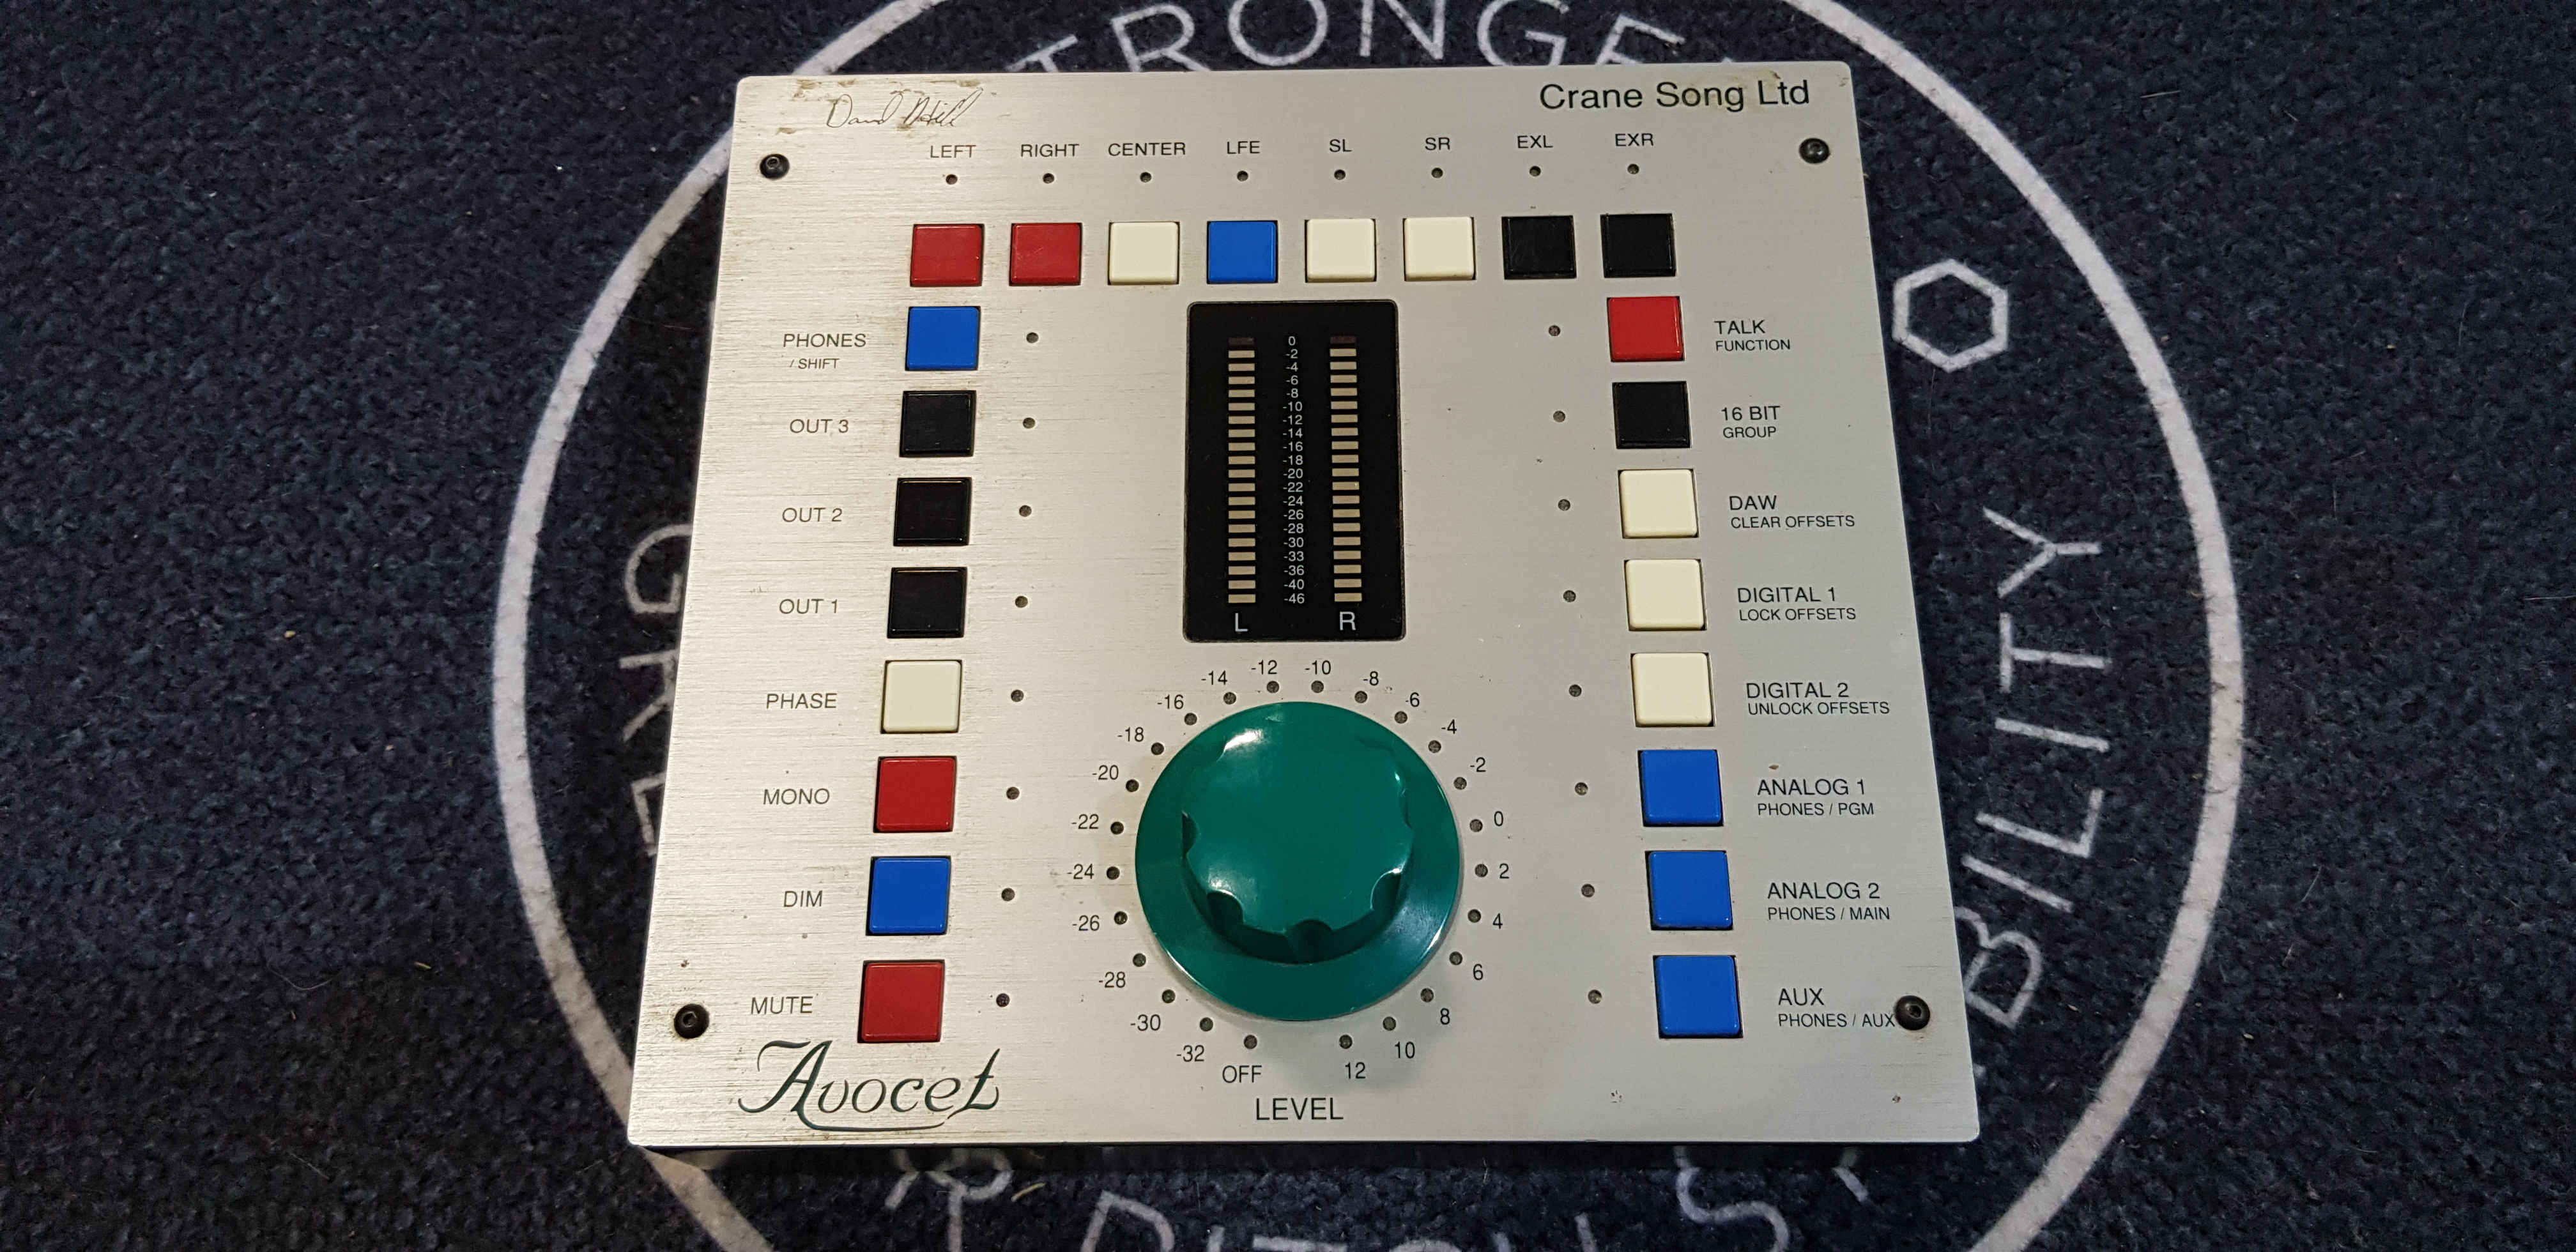 CRANE SONG LTD AVOCET Stereo Monitor Controller - LOCAL PICKUP ONLY!